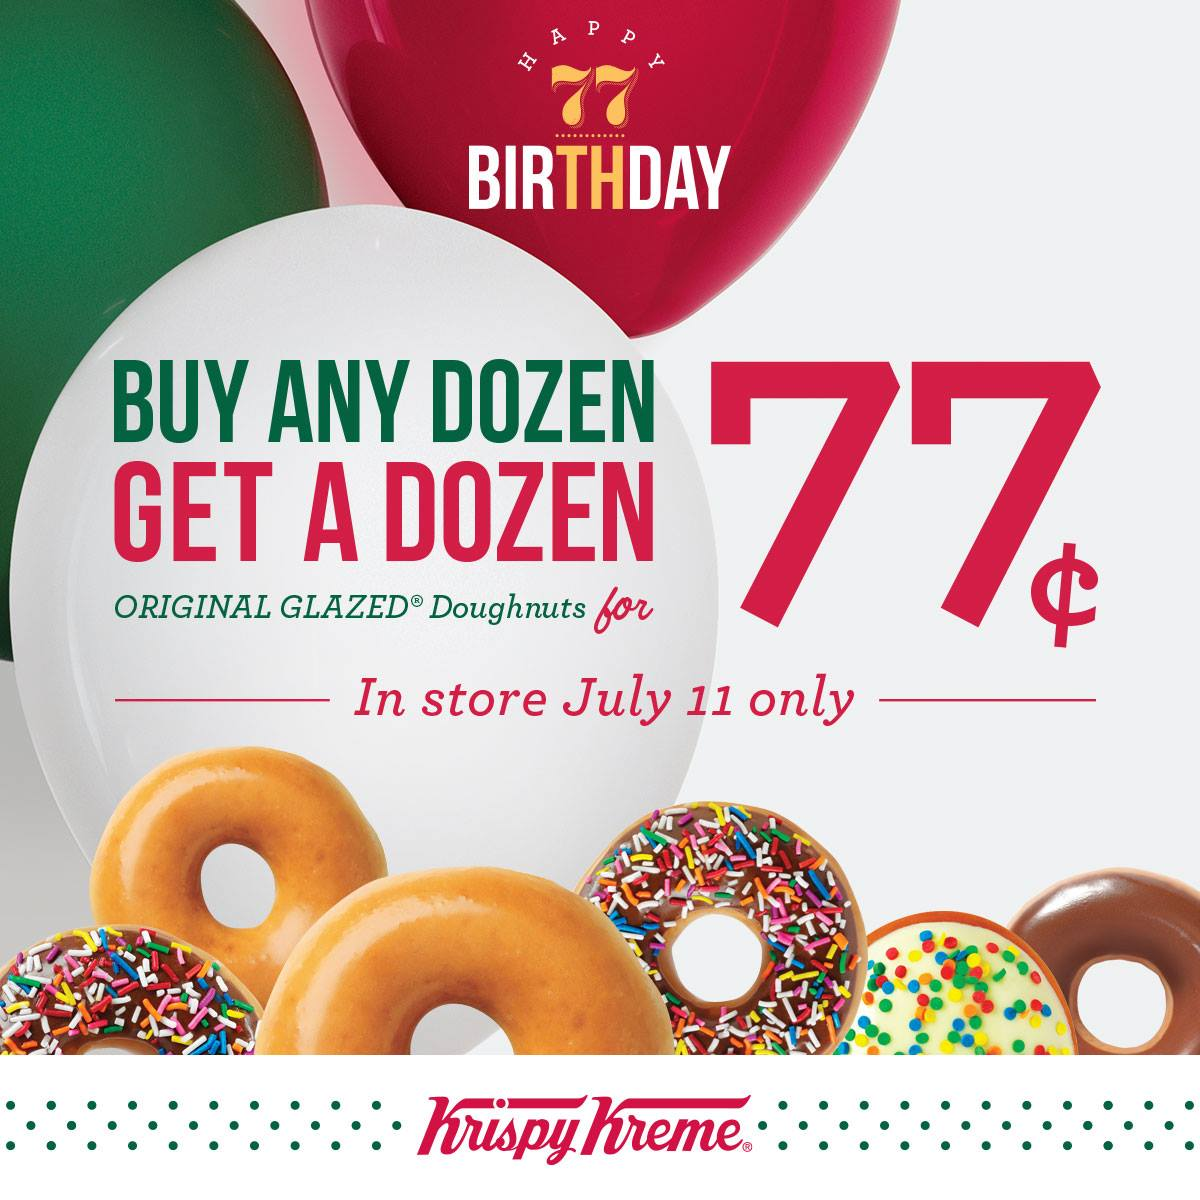 There are several restaurants offering freebies and sweet deals on National Dessert Day. Krispy Kreme doughnuts are pictured their store in Washington, DC, Dec. 1, but they will also.